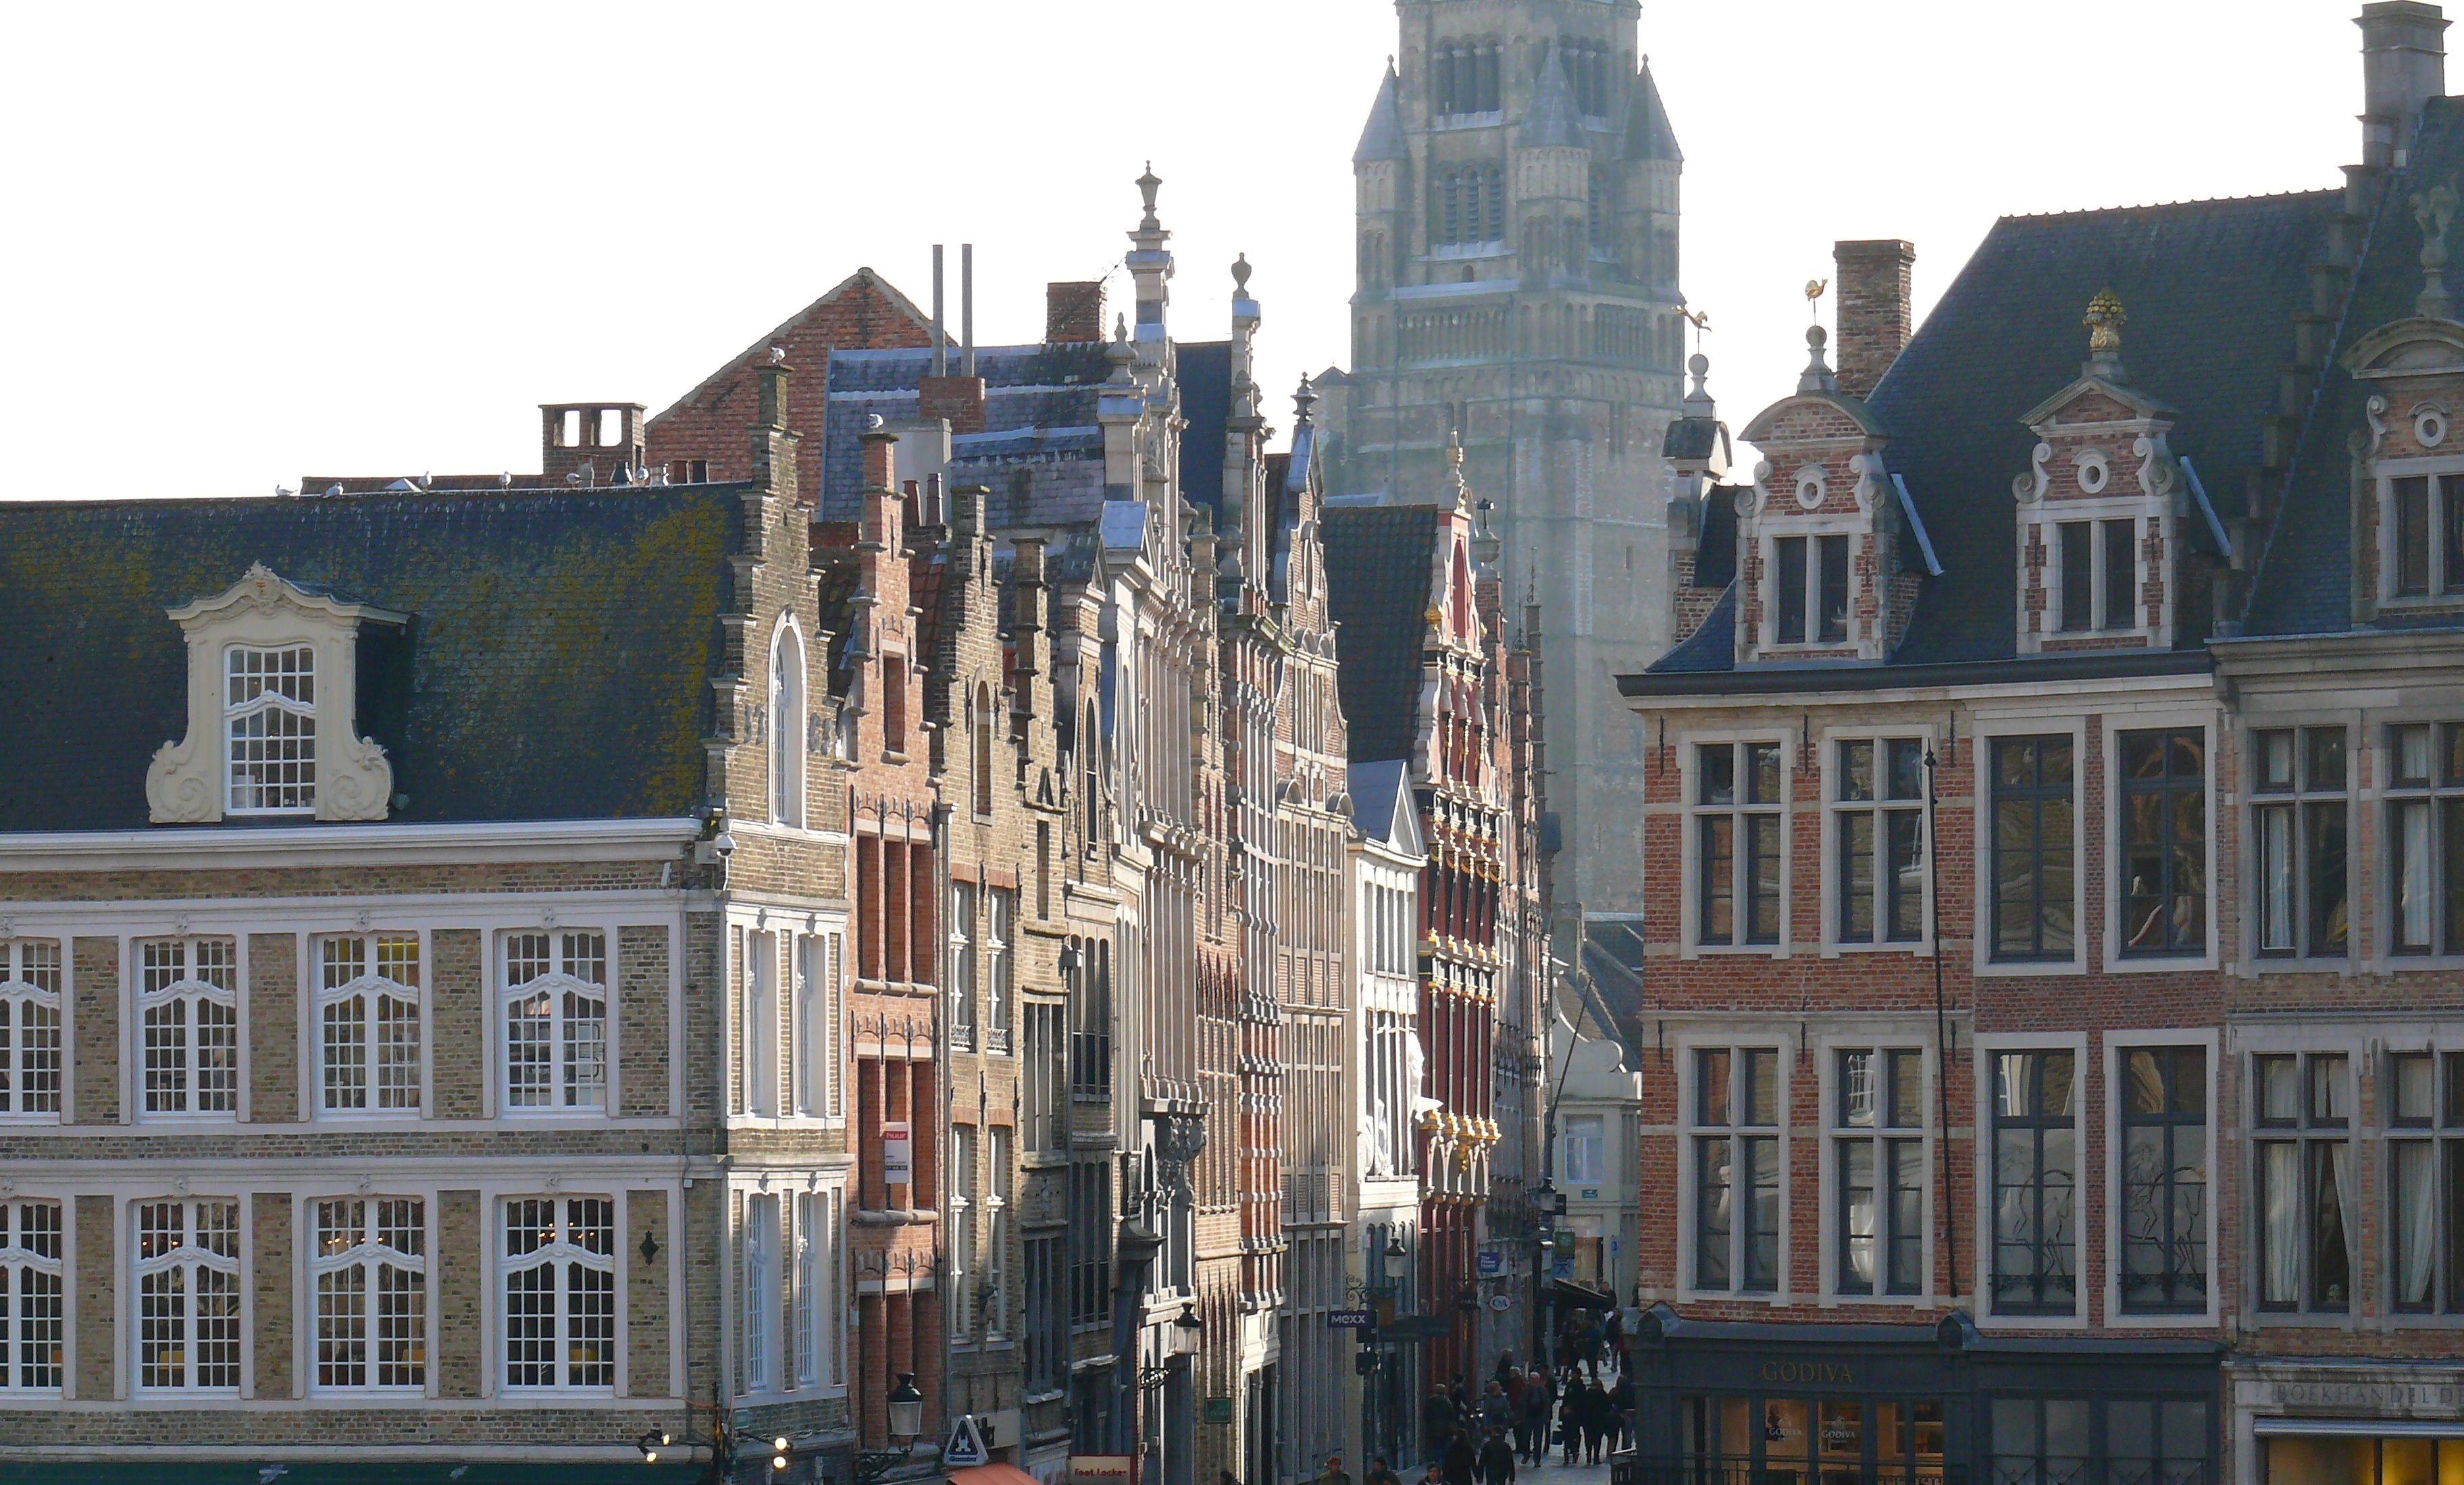 Bruges (Brugge) Belgium photo by The Shabby Shed shabbytreats.com